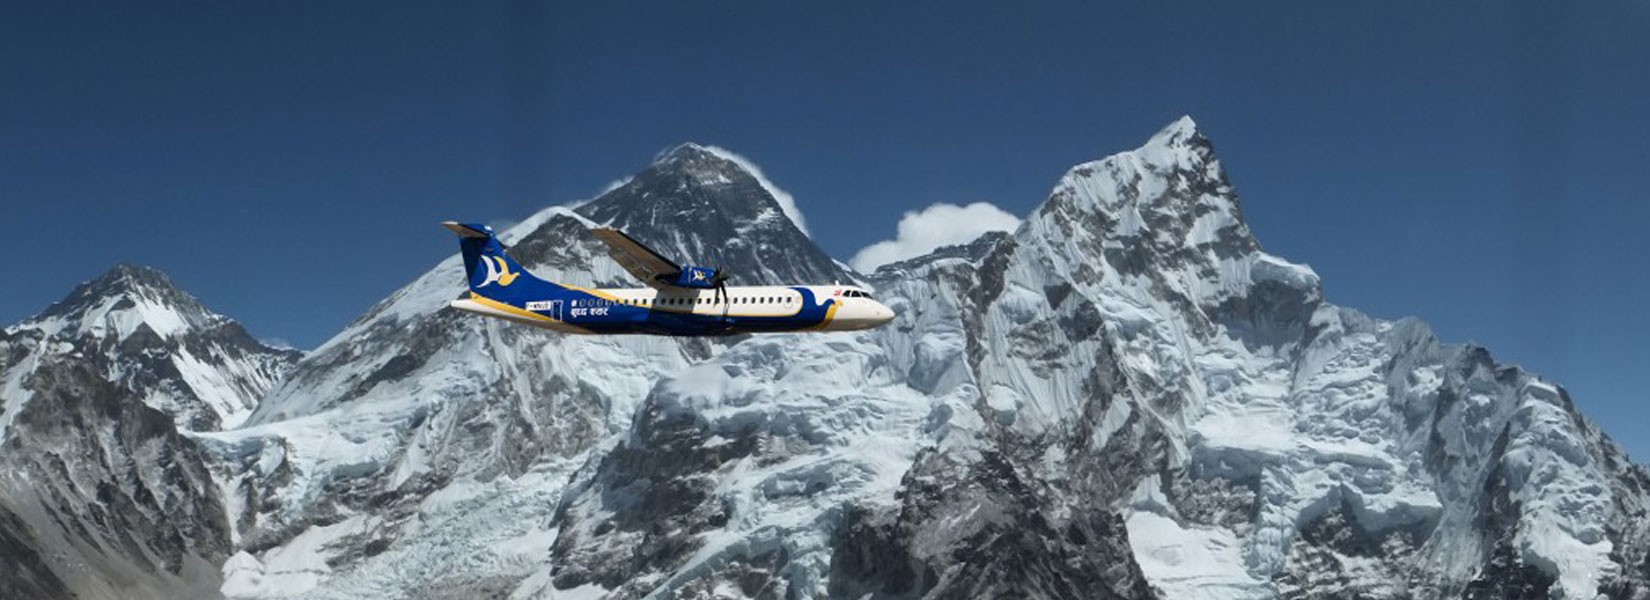 Mt. Everest flight Day Trip